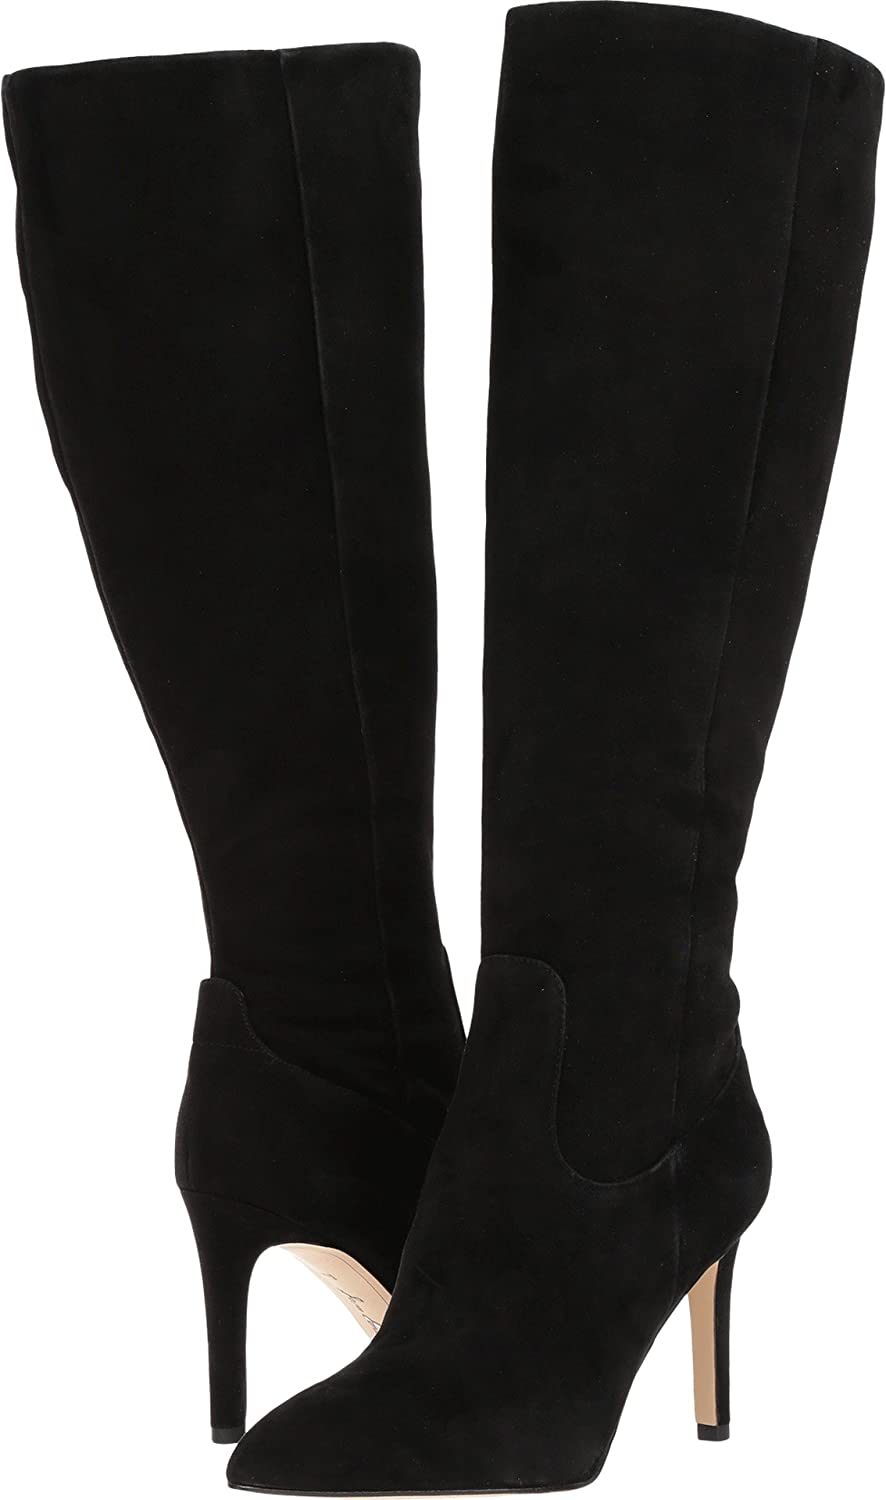 Sam Edelman Women's Olencia Knee High Boot B06XJ5L1D6 8 C/D US|Black Kid Suede Leather